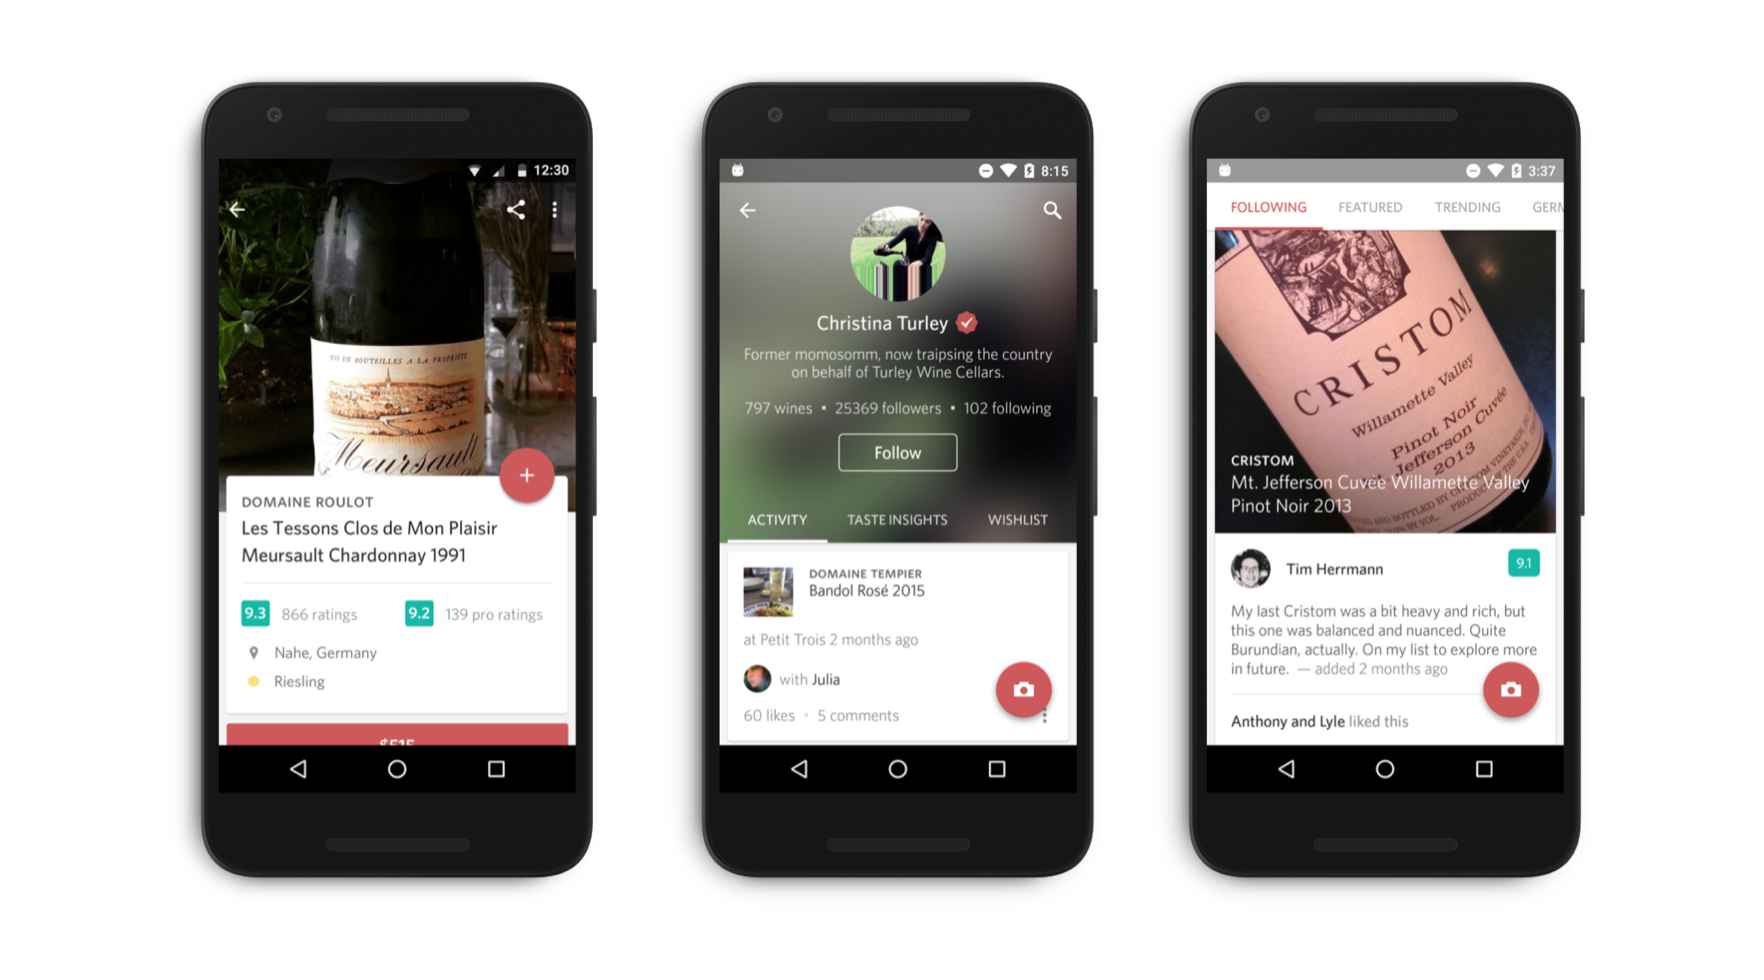 Showcase of Delectable on Android's user interface